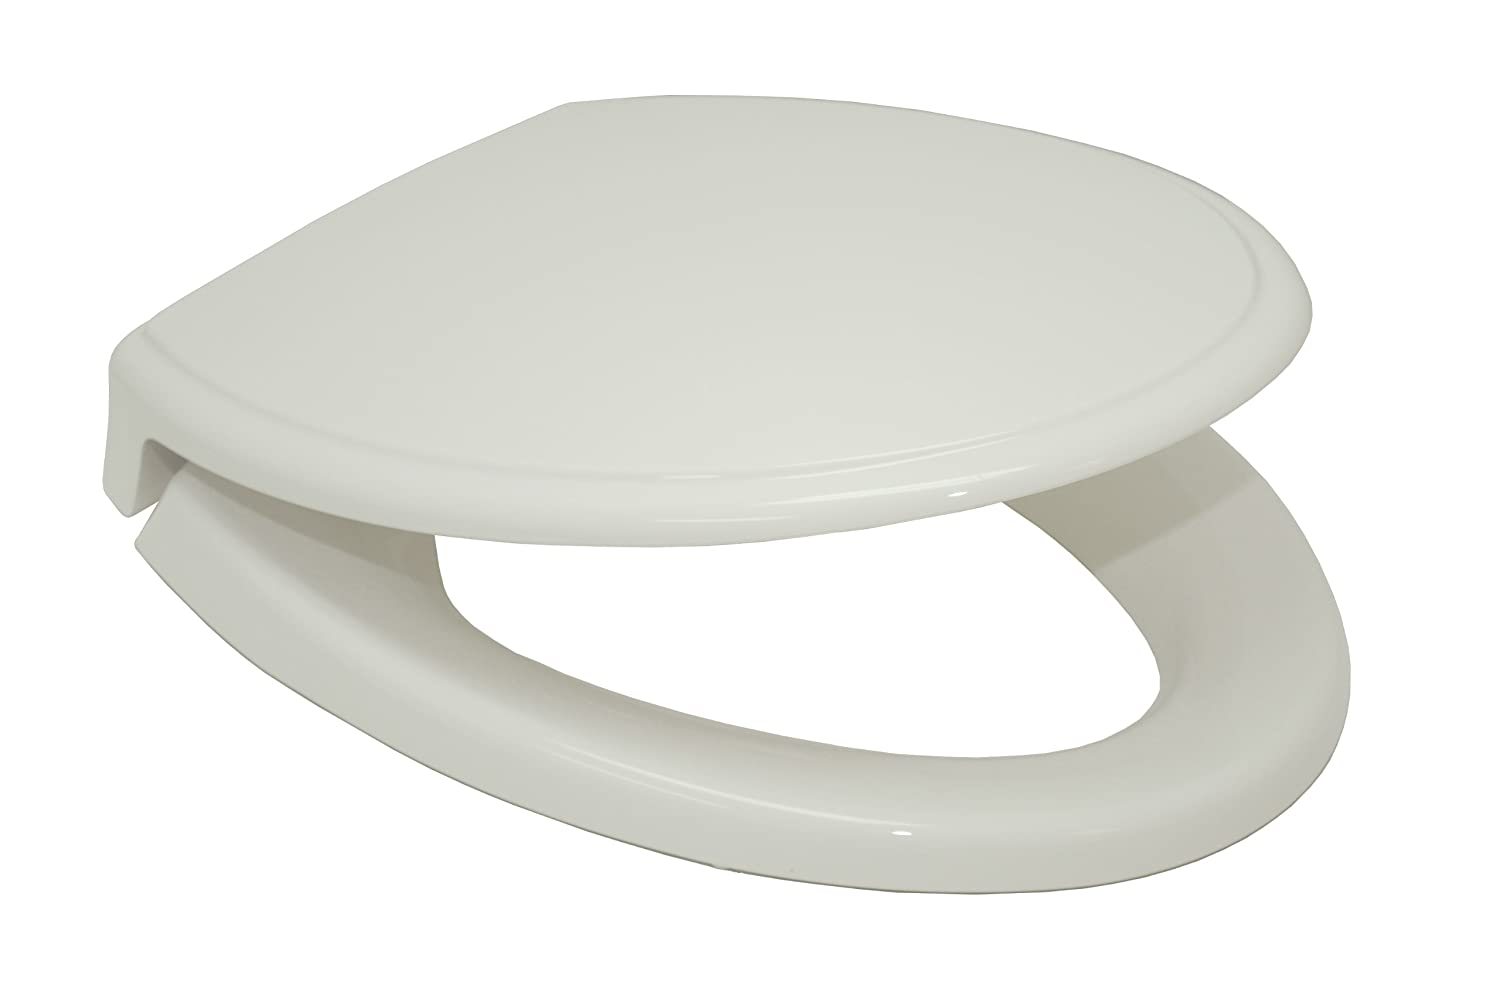 TOTO SS154#11 Traditional SoftClose Elongated Toilet Seat